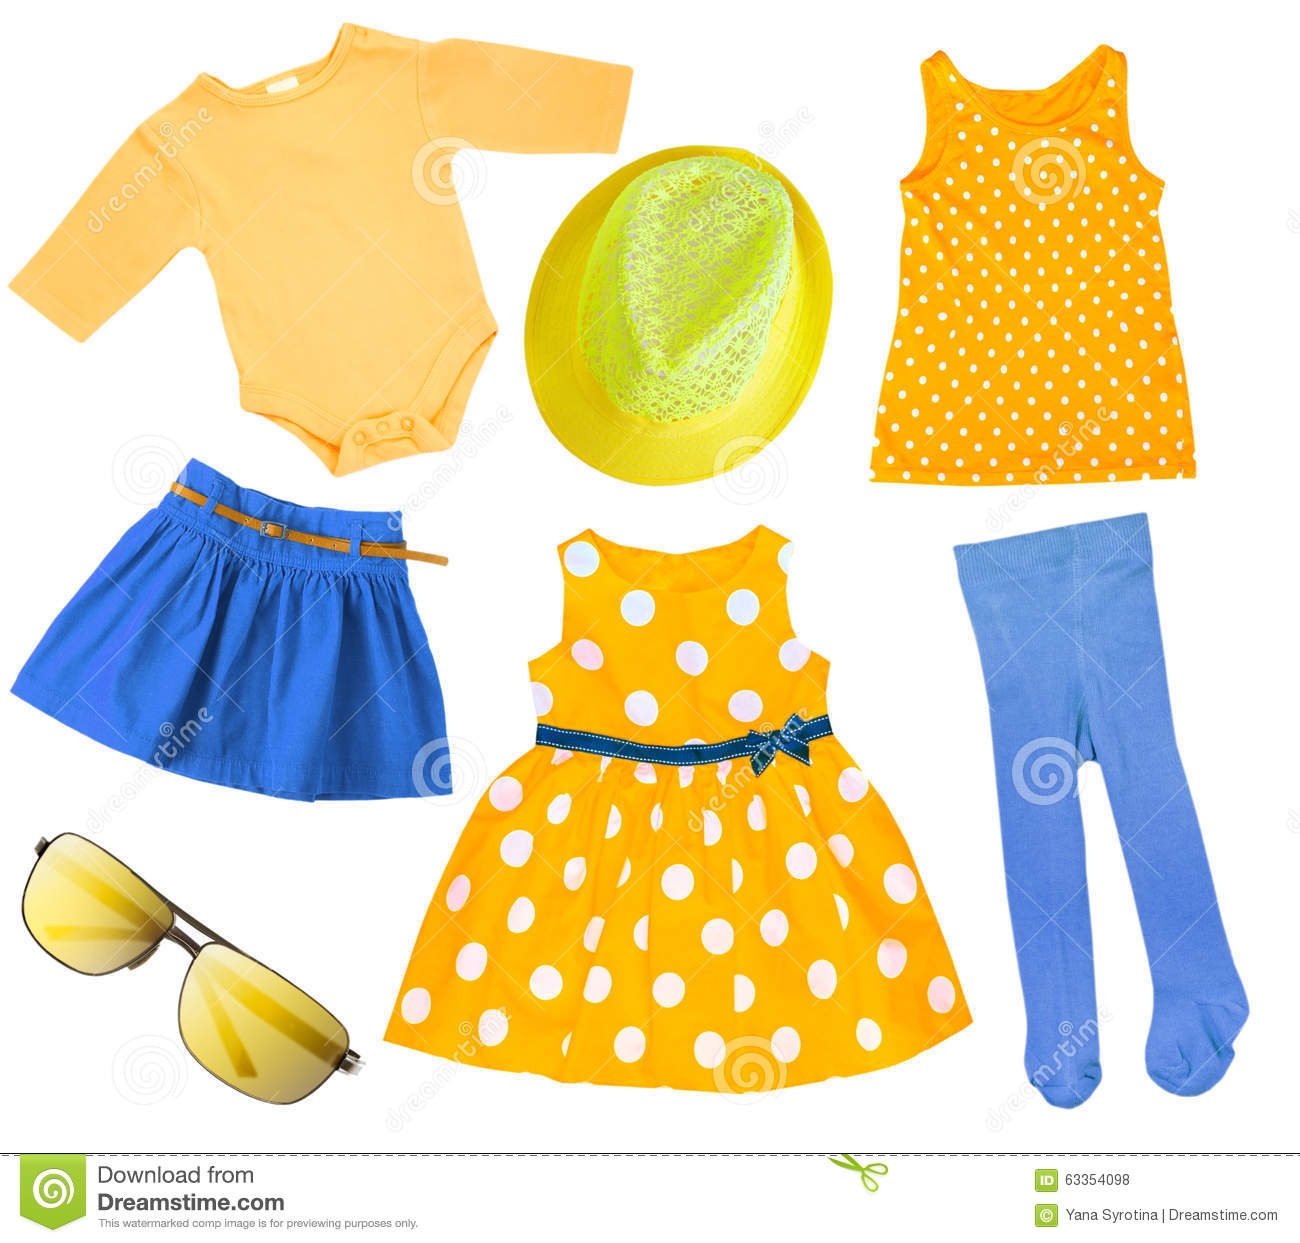 f4b18a346ae8 Child Girl Bright Summer Clothes Isolated. Stock Photo - Image of ...